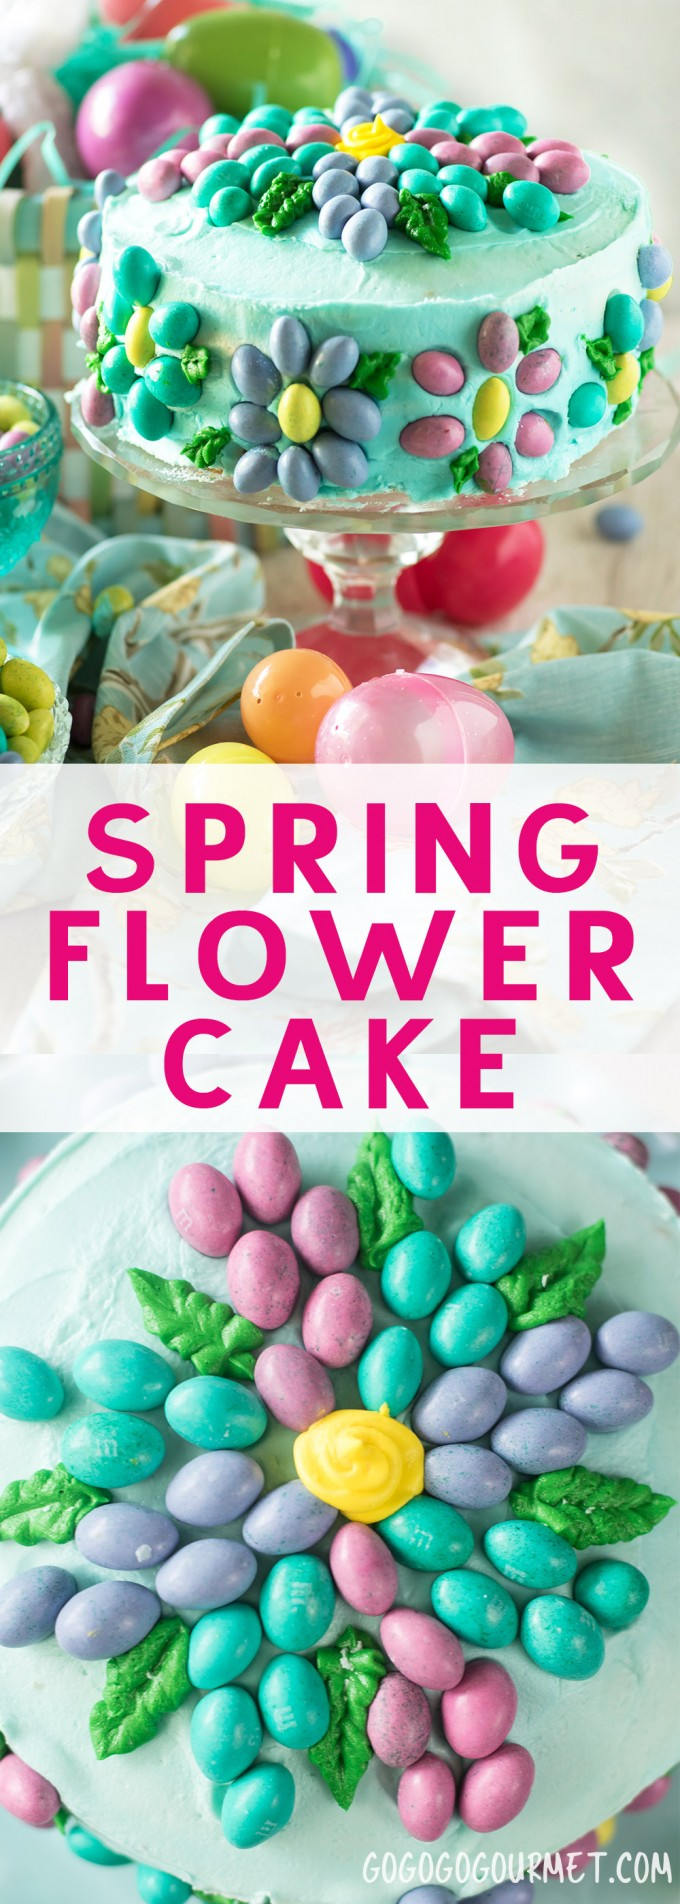 This Spring Flower Cake is super easy to make using your favorite candy and a few simple cake decorating basics. Learn how to